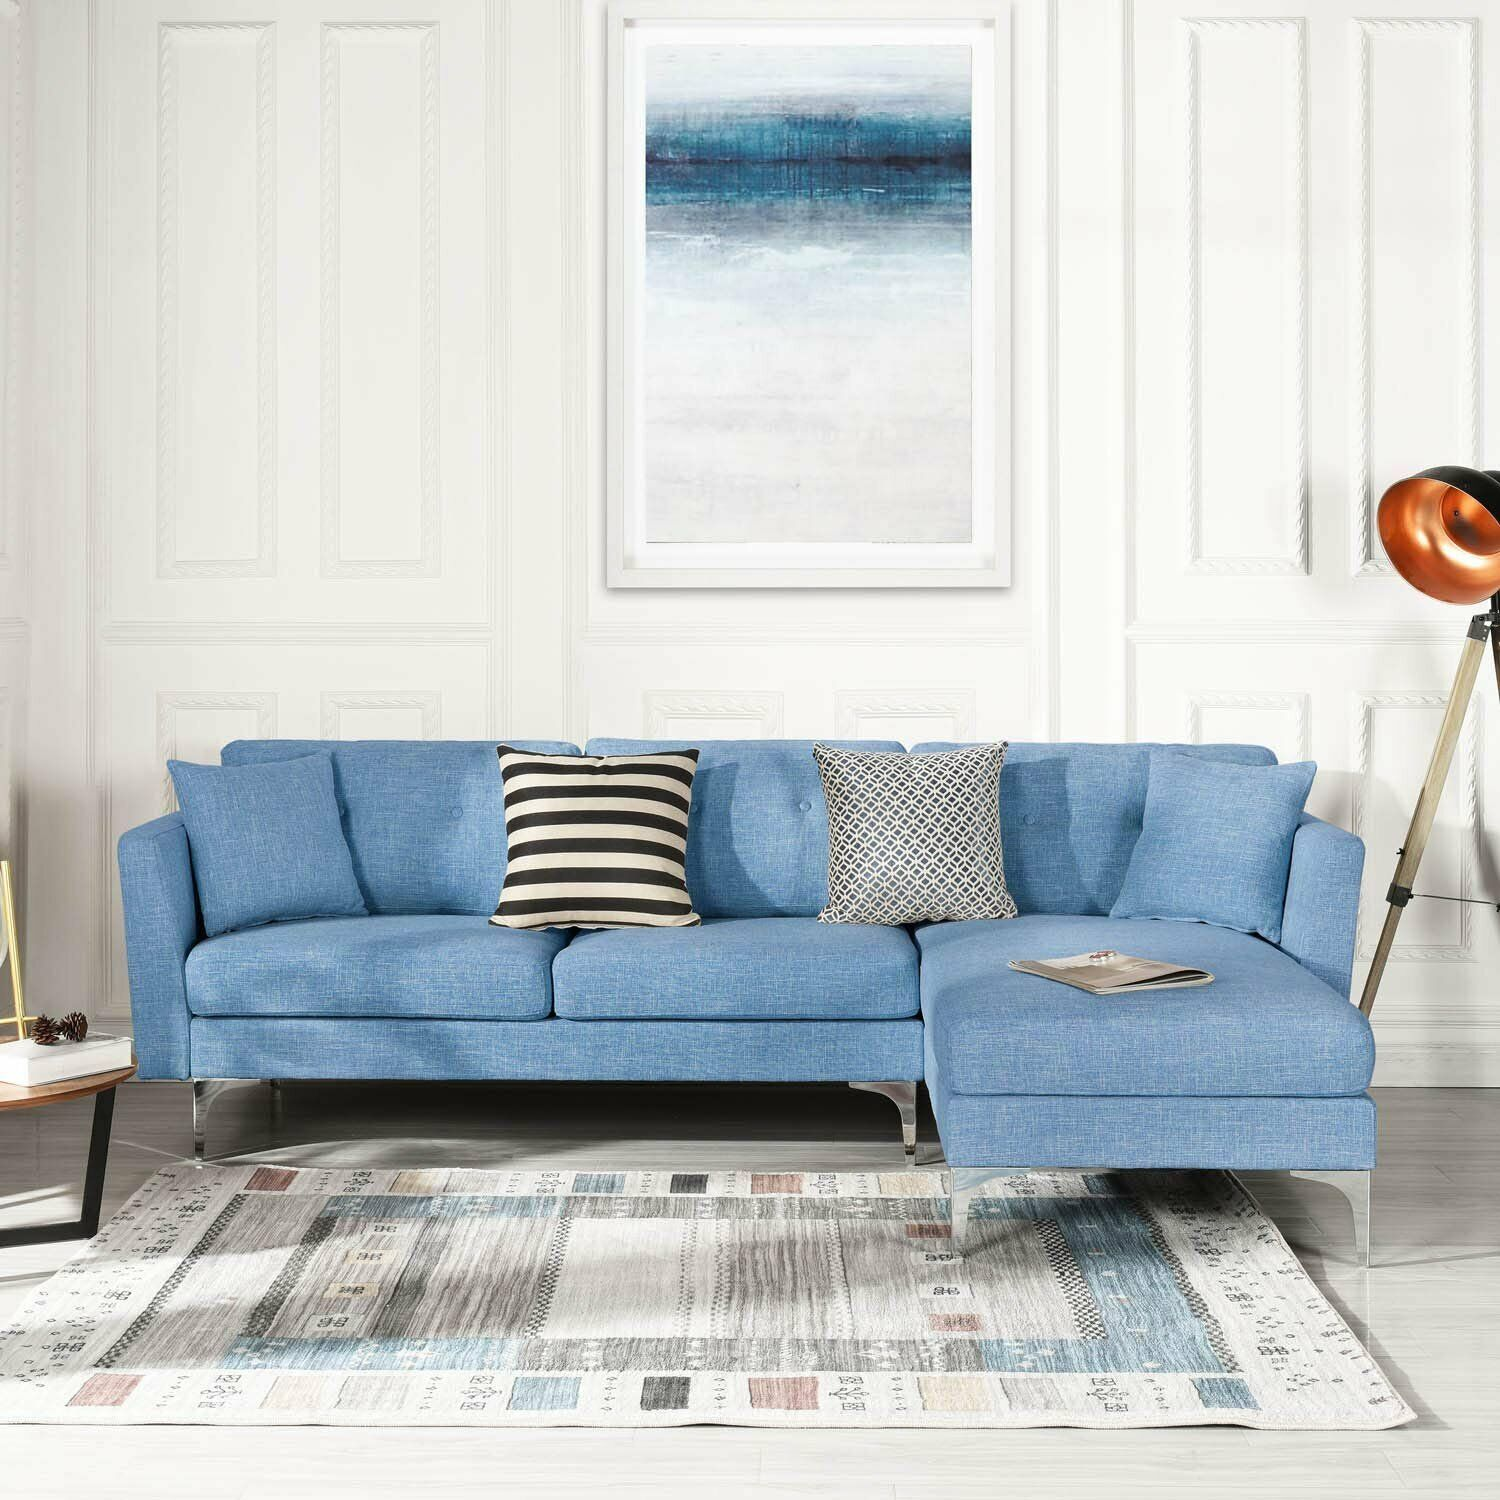 Pleasant Blue Upholstered Linen Sectional Sofa Couch Modern L Shape Sectional Couch Ibusinesslaw Wood Chair Design Ideas Ibusinesslaworg